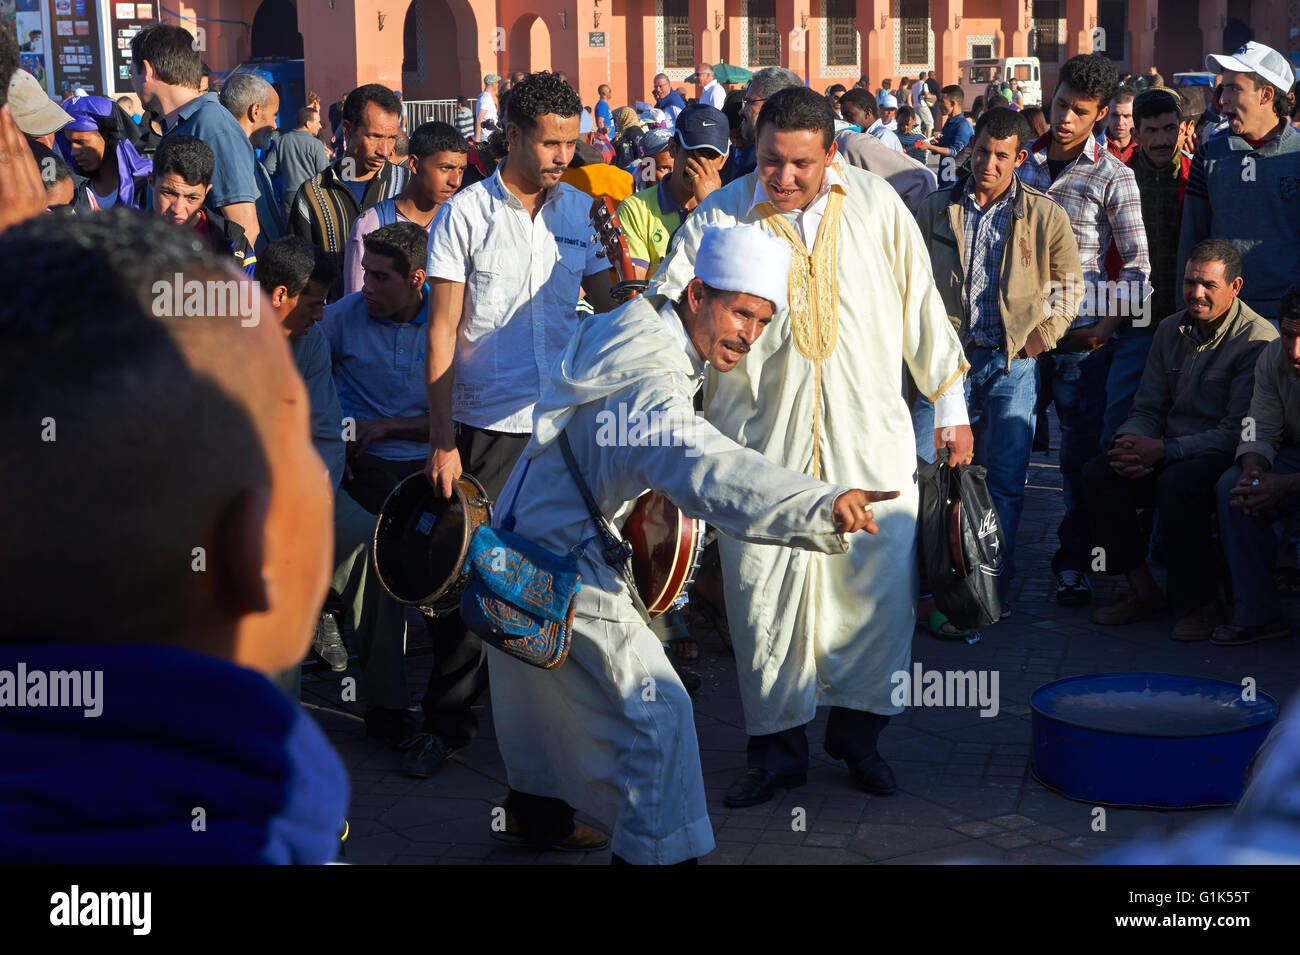 Traditional street entertainers performing  in the Jemaa el-Fnaa square in  Marrakech, Morocco. A UNESCO World Heritage - Stock Photo